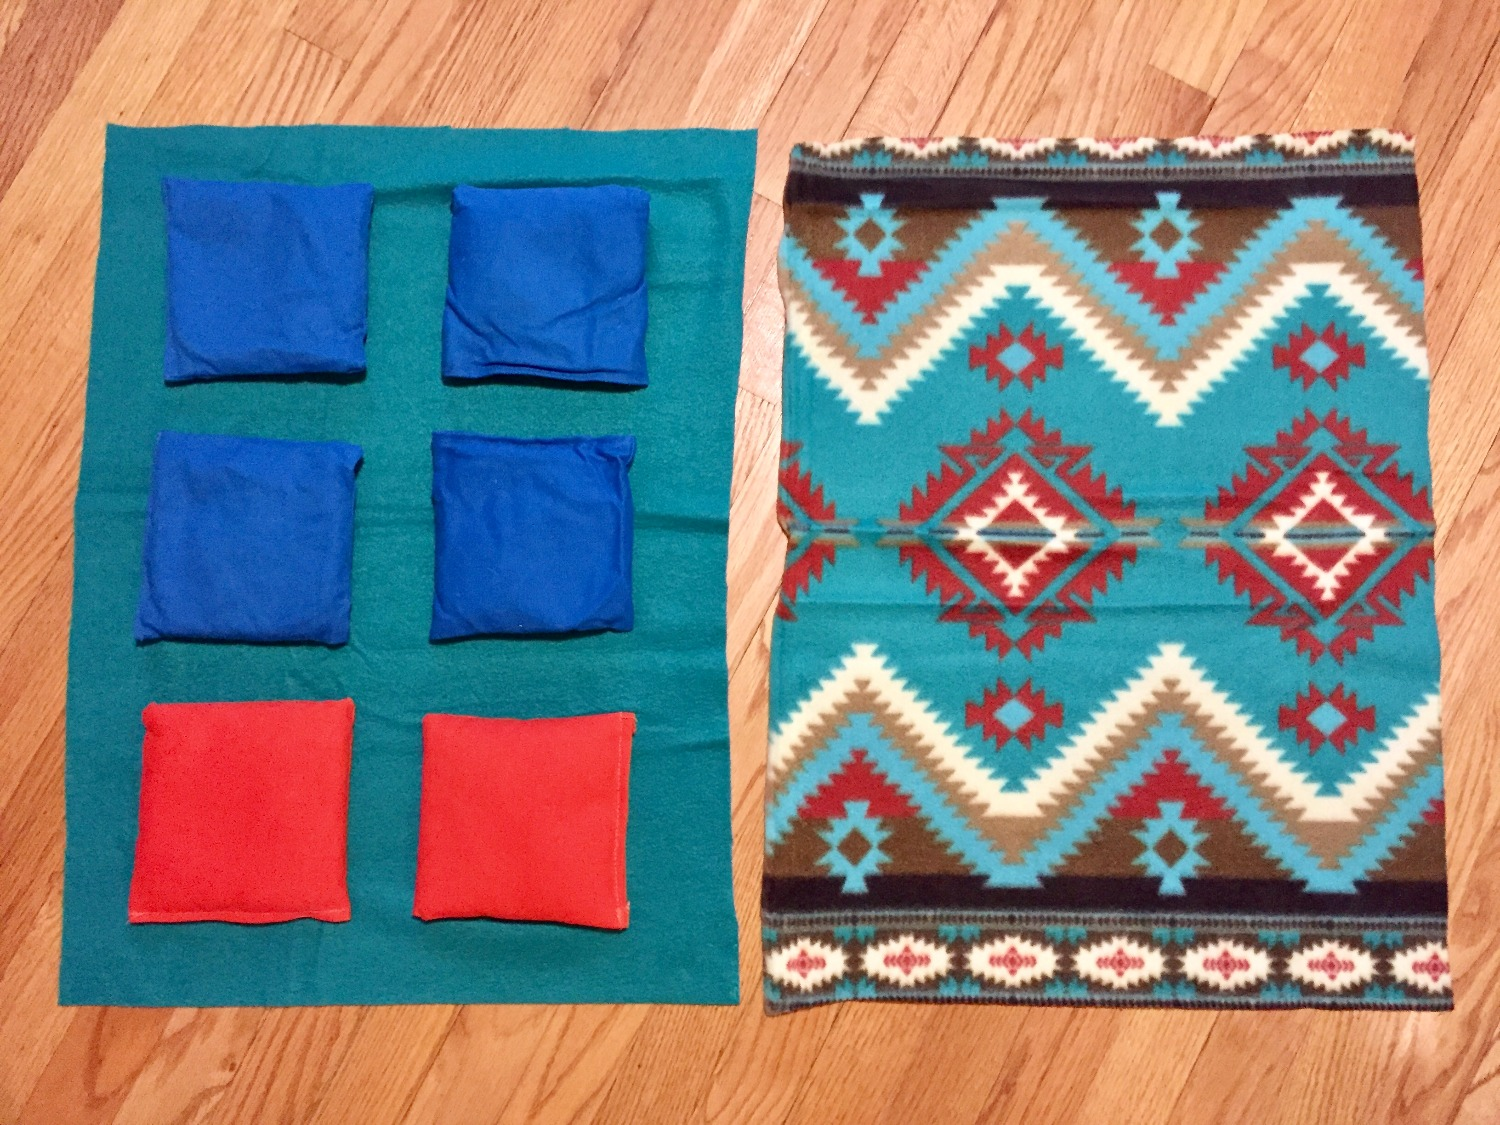 Music therapy, DIY weighted blankets